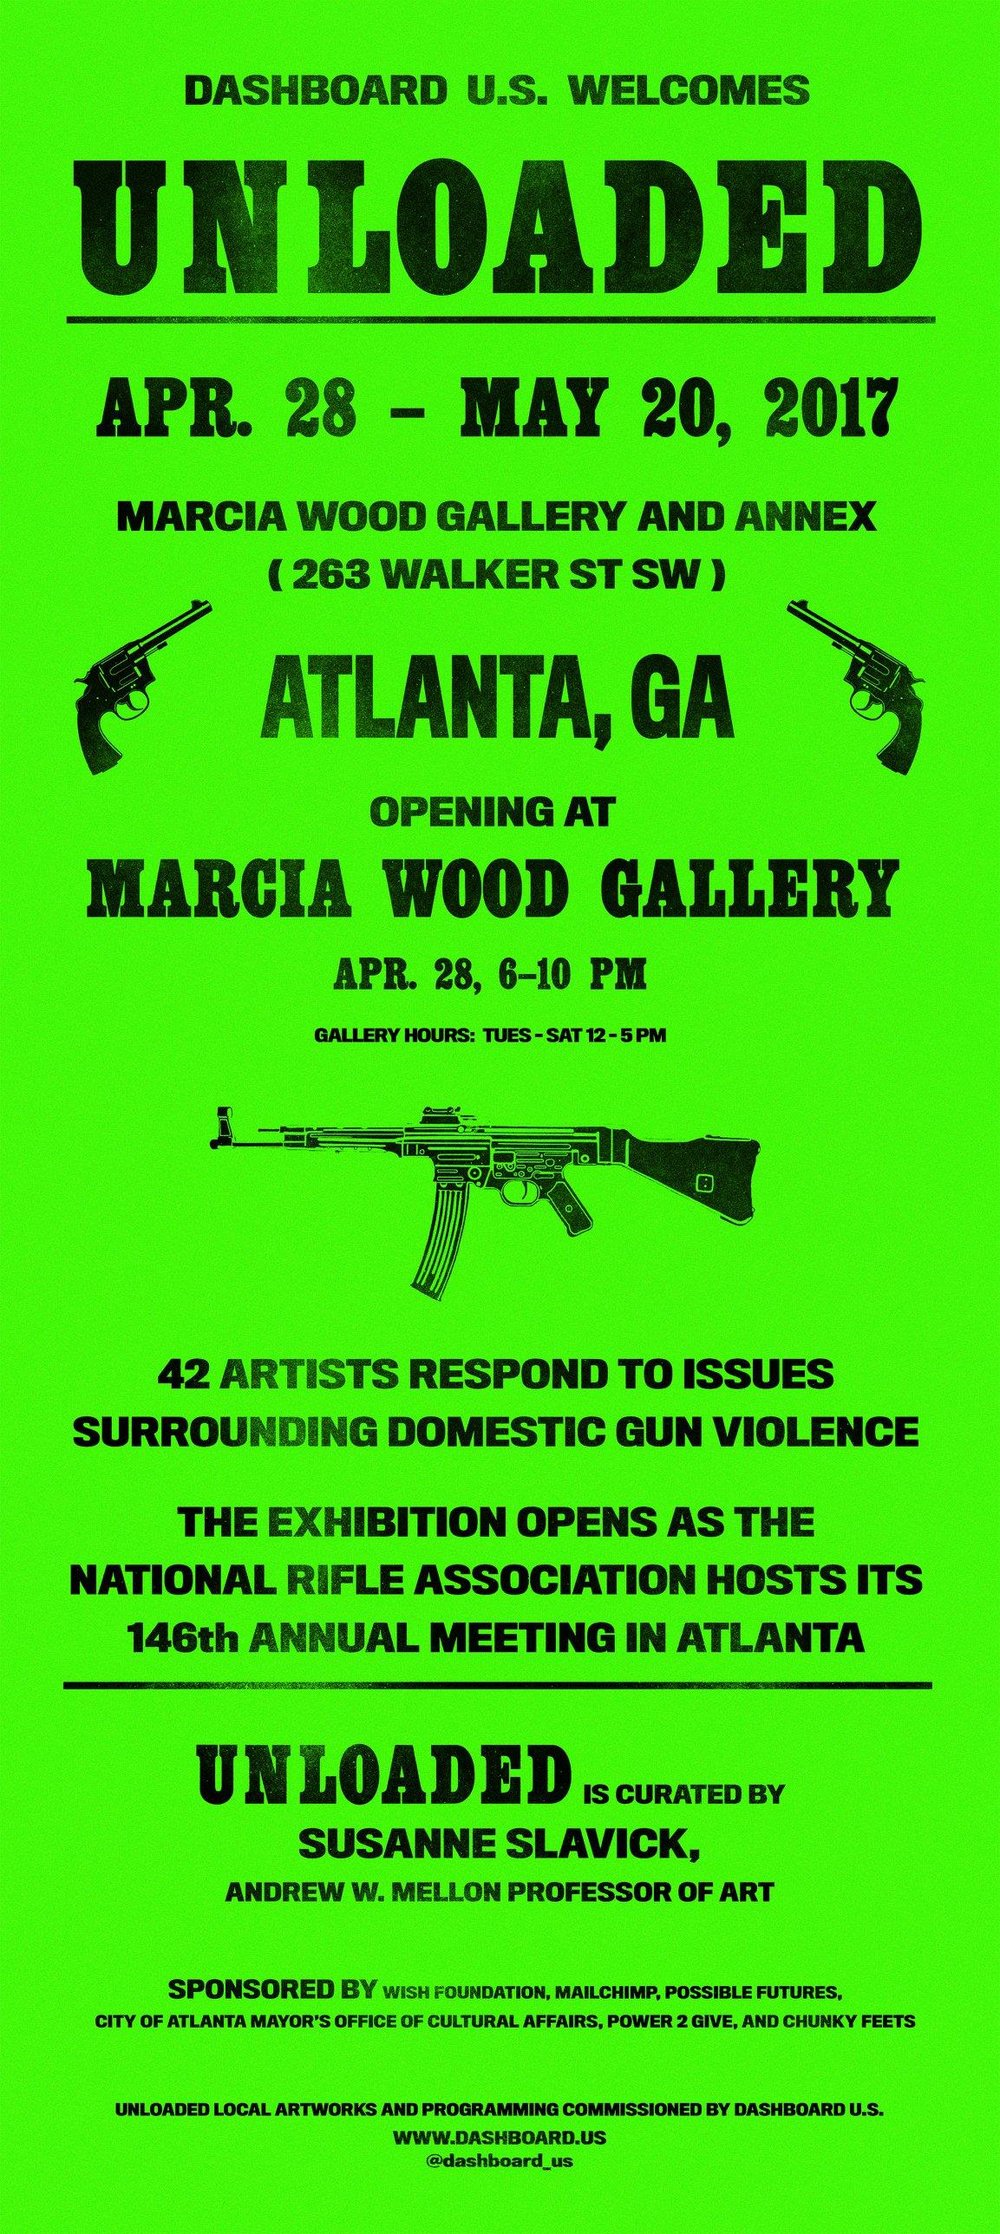 Dashboard unveils Unloaded, a multimedia group show that explores historical and social issues surrounding the availability, use, and impact of guns in our culture, this Friday night at Marcia Wood Gallery.